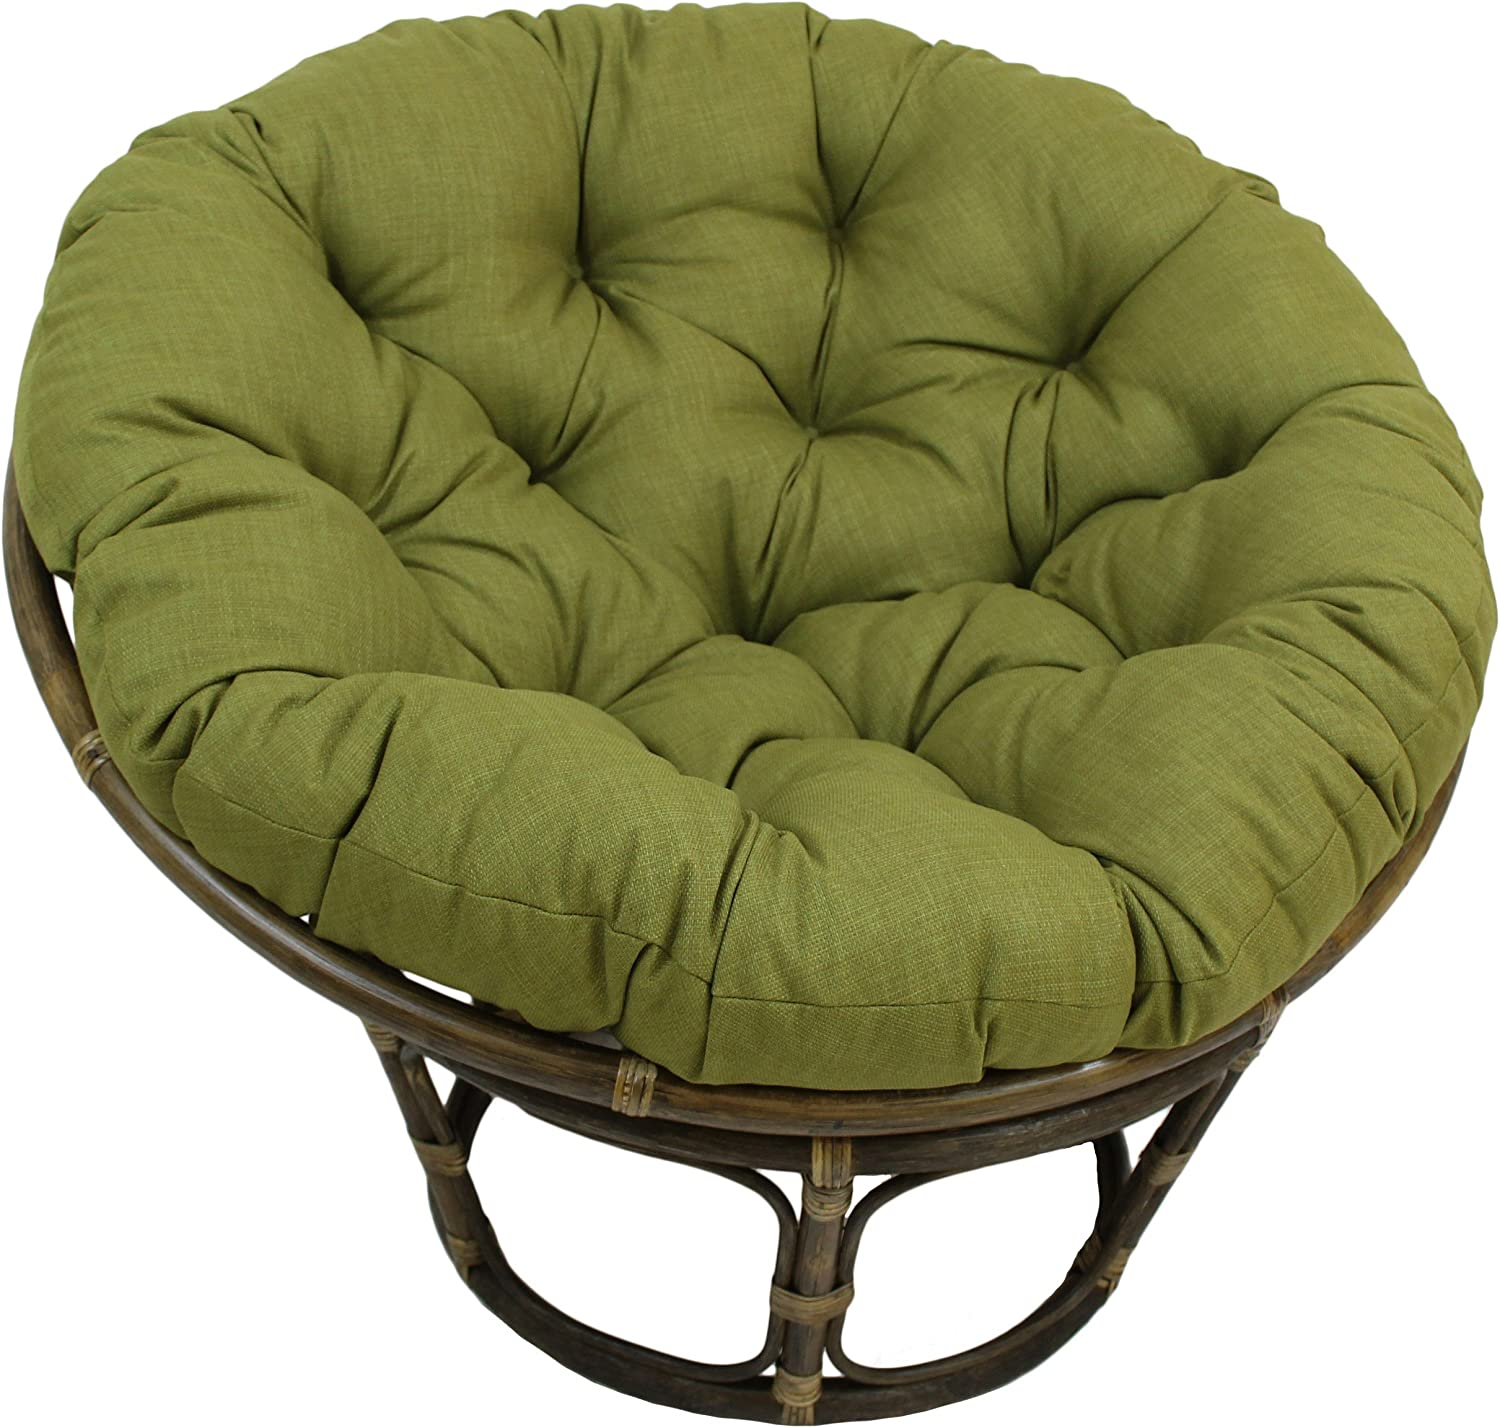 Blazing Max 90% Low price OFF Needles Solid Outdoor Spun Papasan Cushion Polyester 52